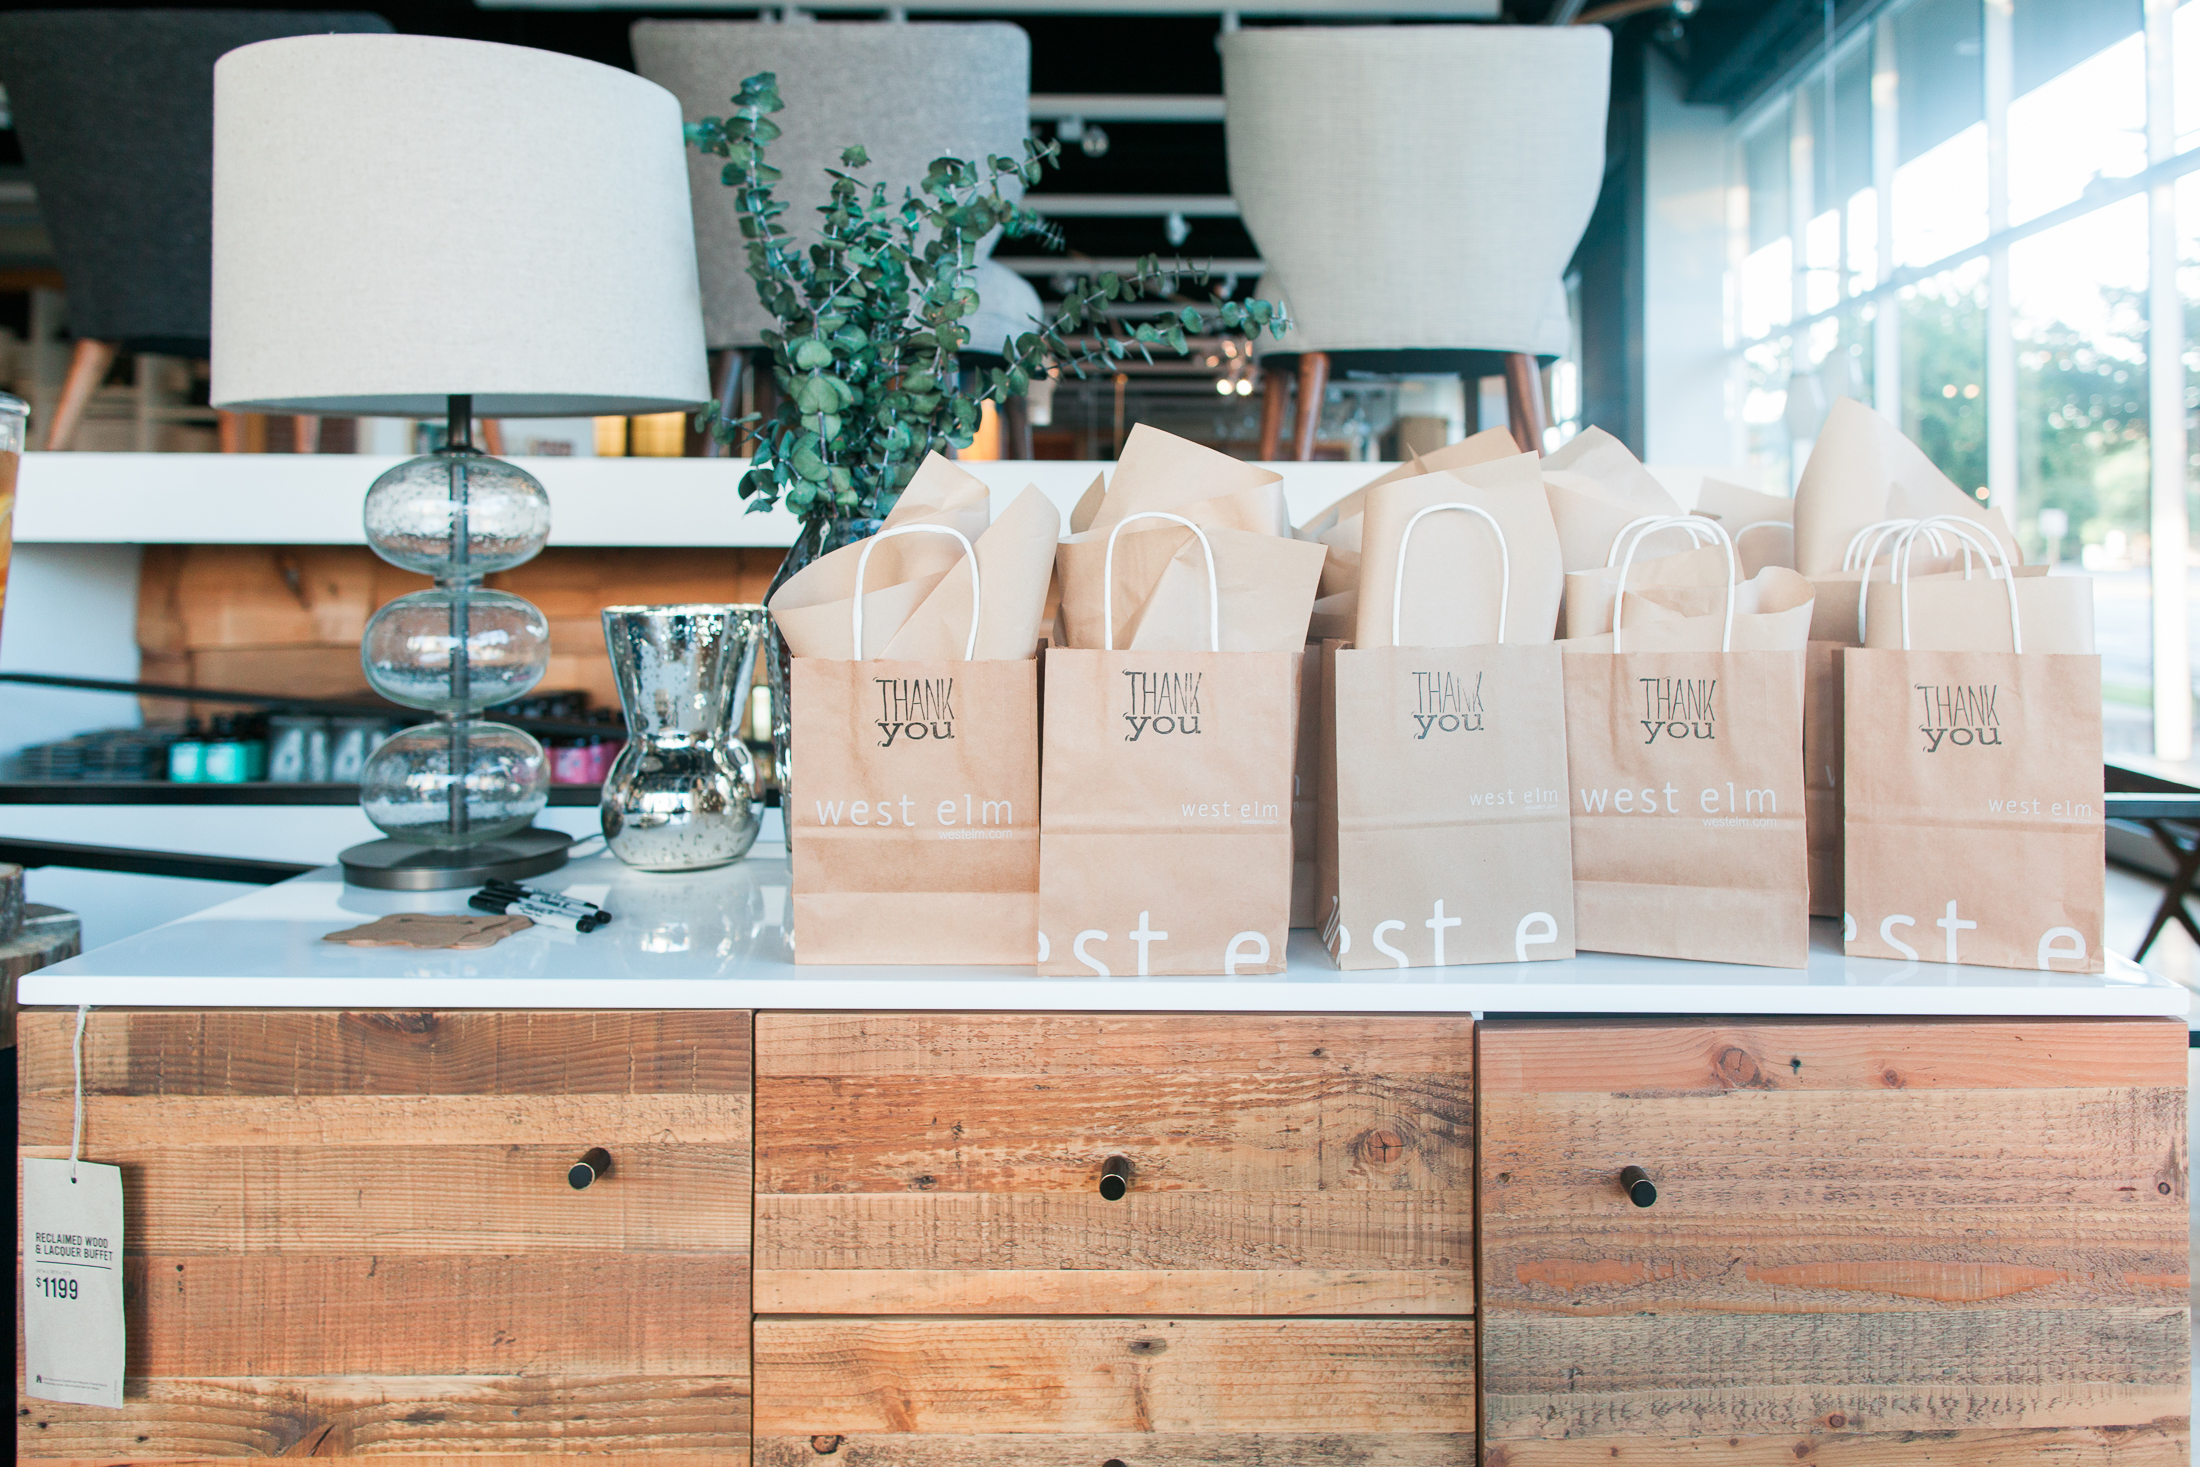 west elm blogger dinner-16.jpg